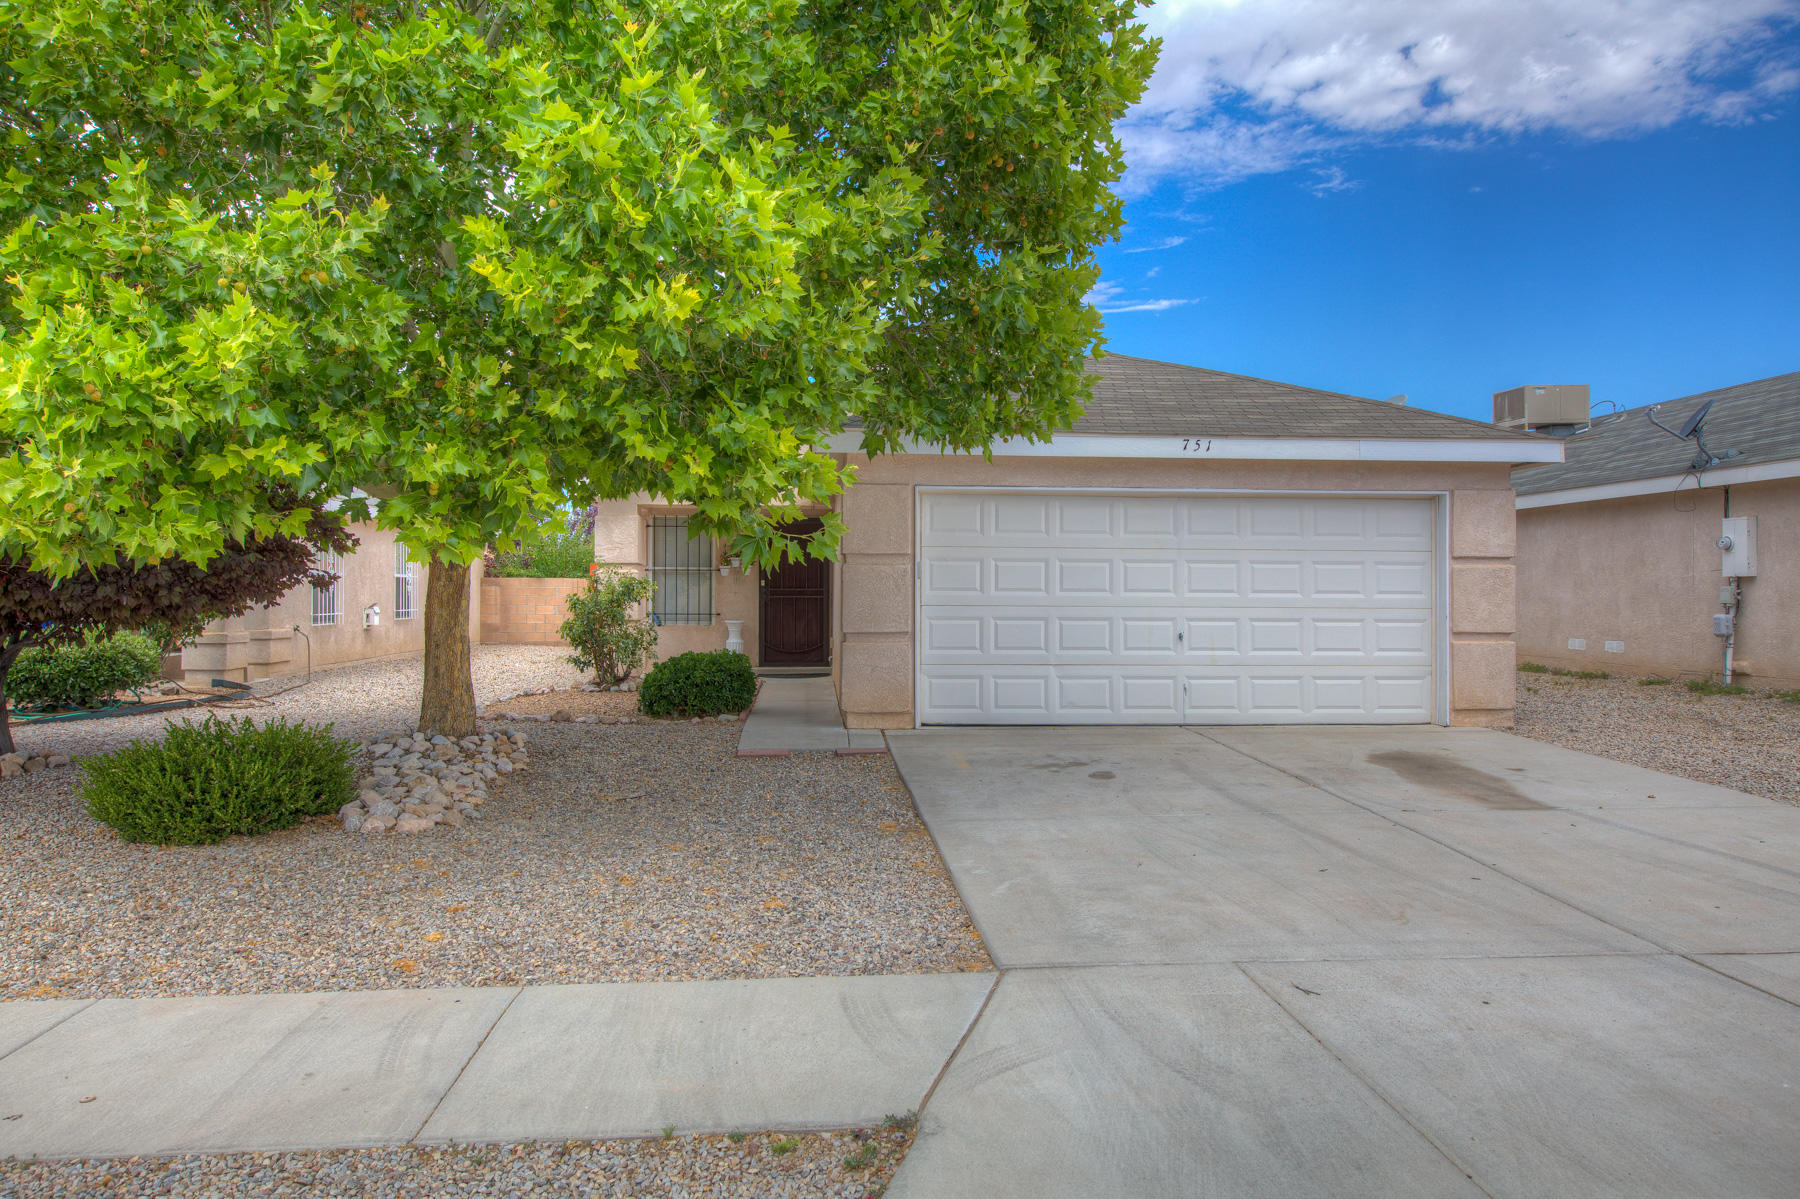 You will love this move in ready, well maintained two bedroom ,two full bath, two car garage home. It has a bright open floor plan. Front and backyard are xeriscaped and very low maintenance. Pride of ownership is definitely evident. Come see for yourself!